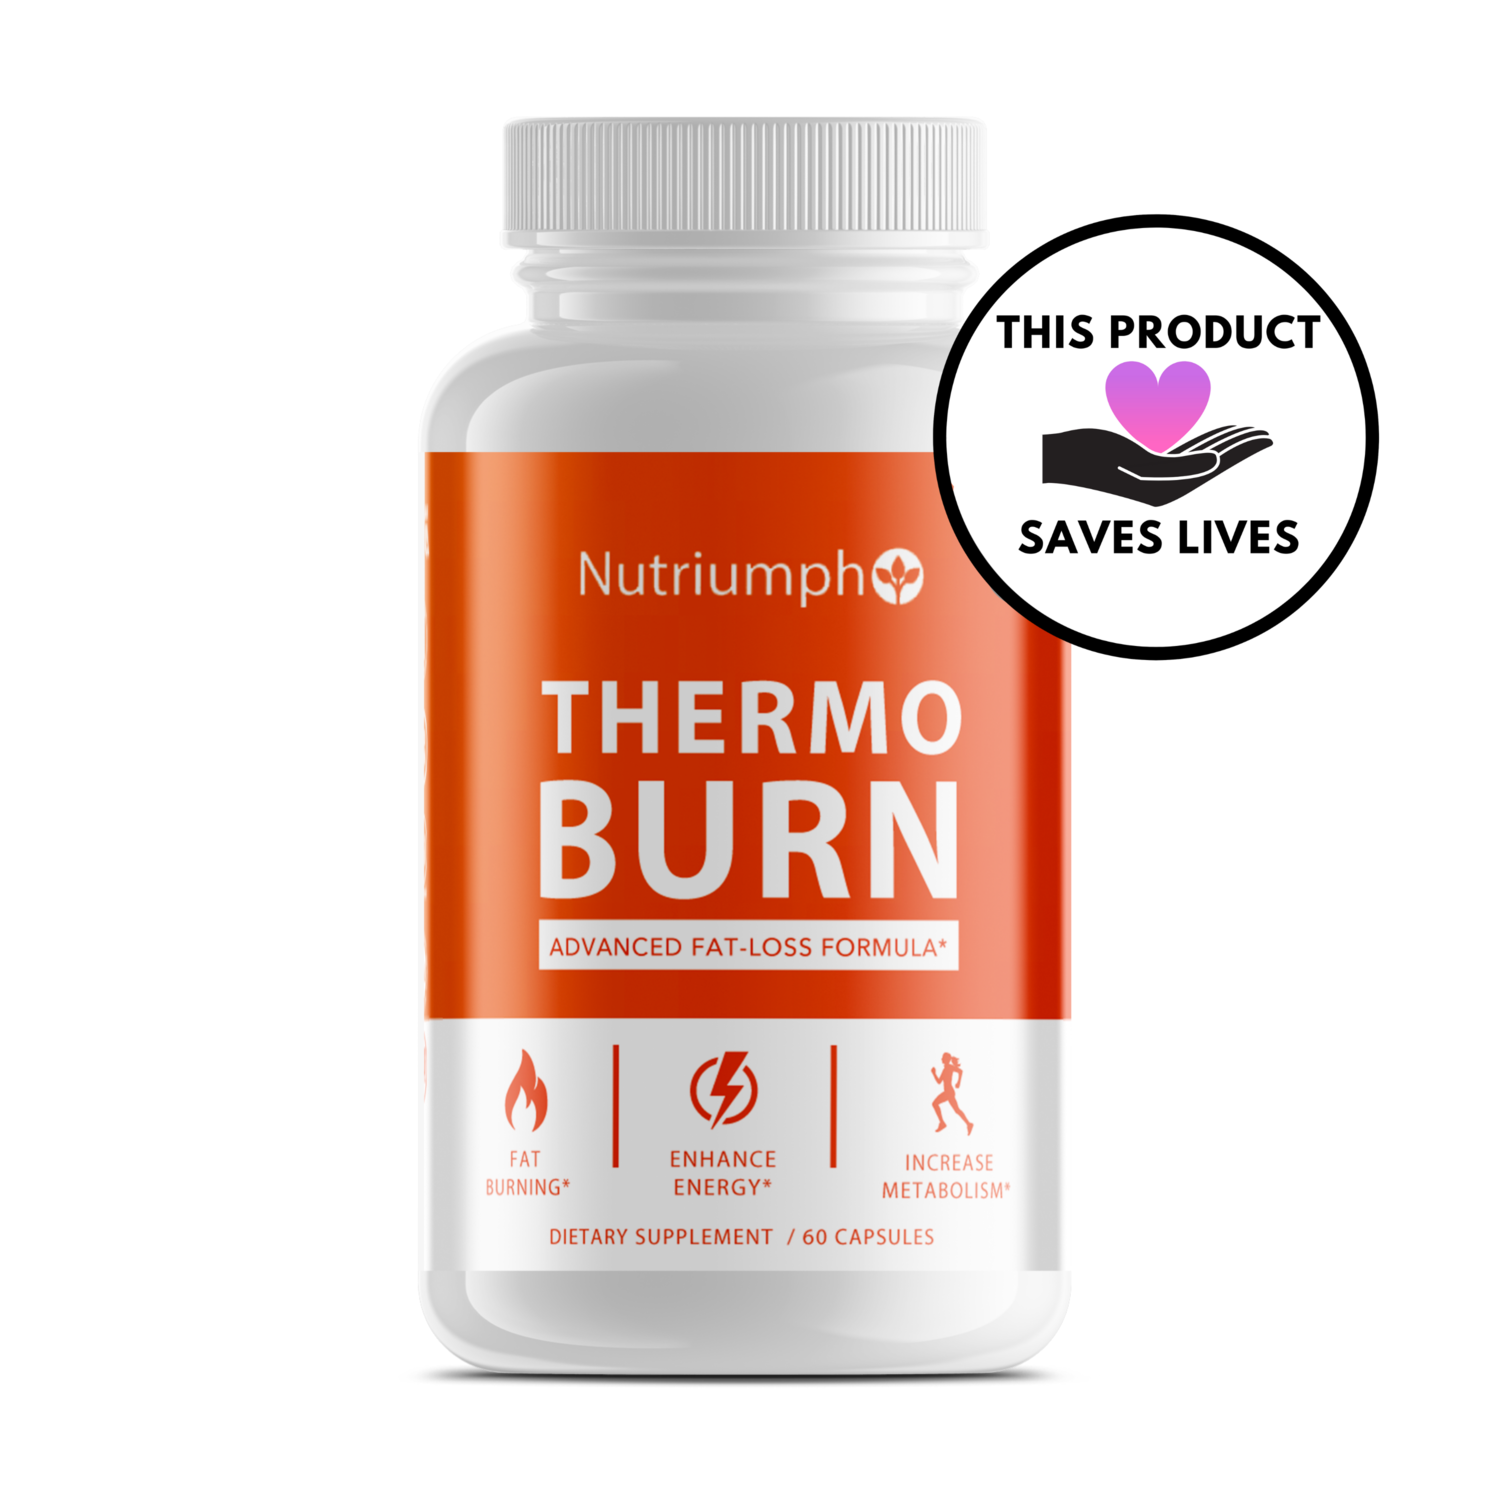 THERMO BURN - Advanced Fat Loss Formula